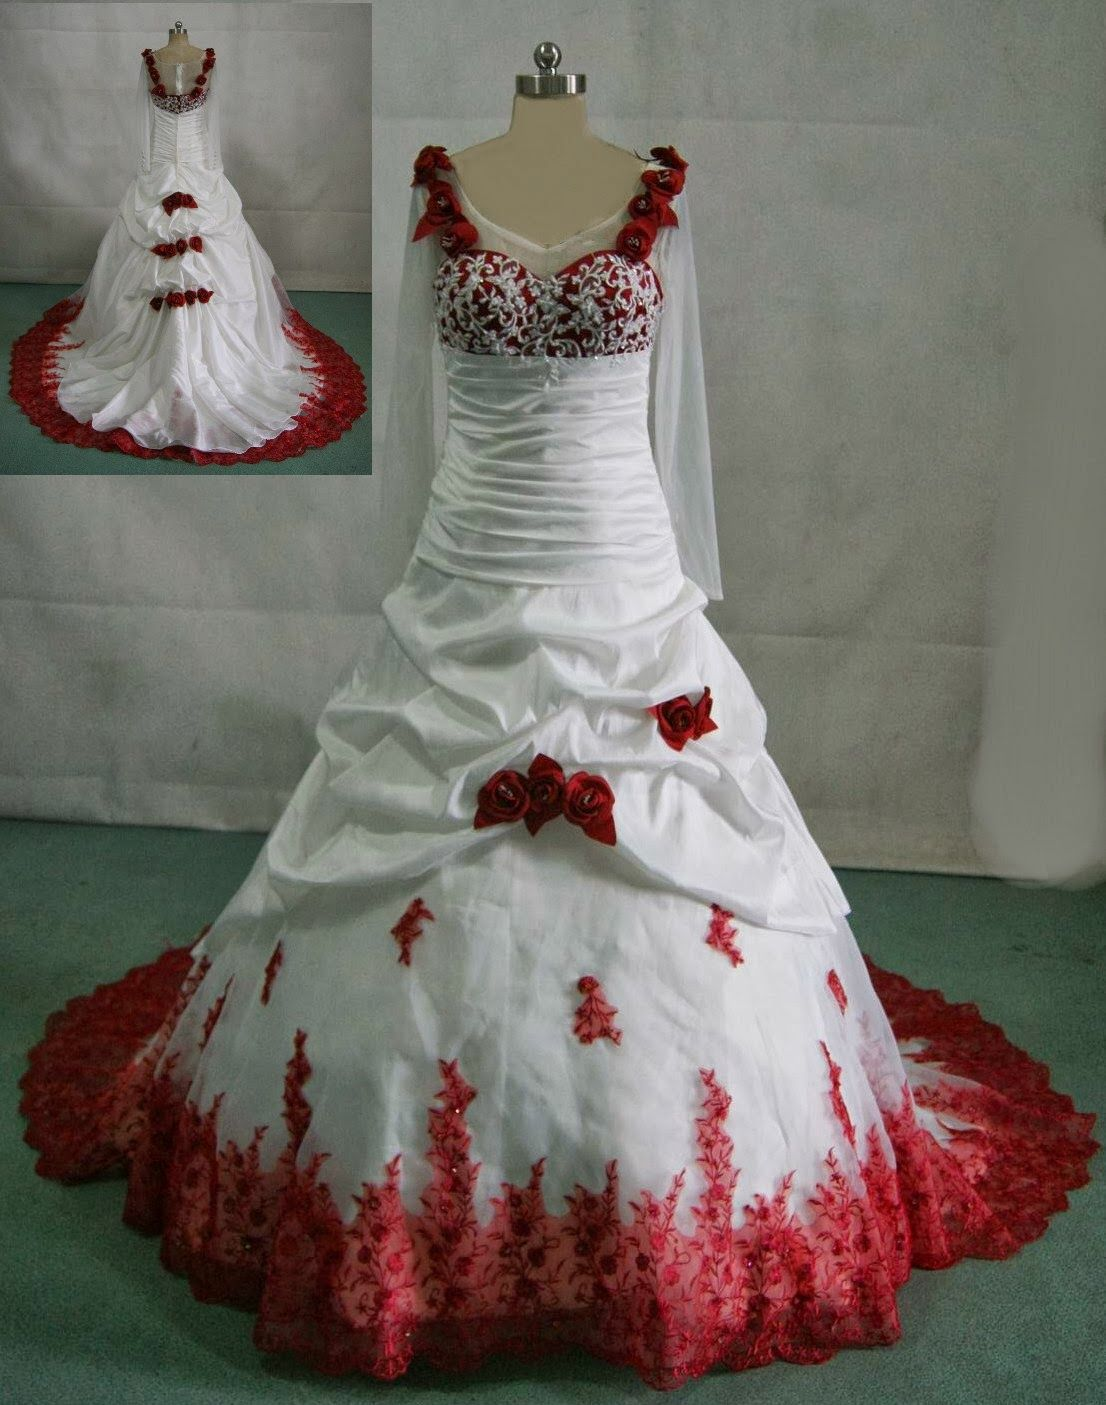 plus size white wedding dress with red accents | Wedding Ideas ...